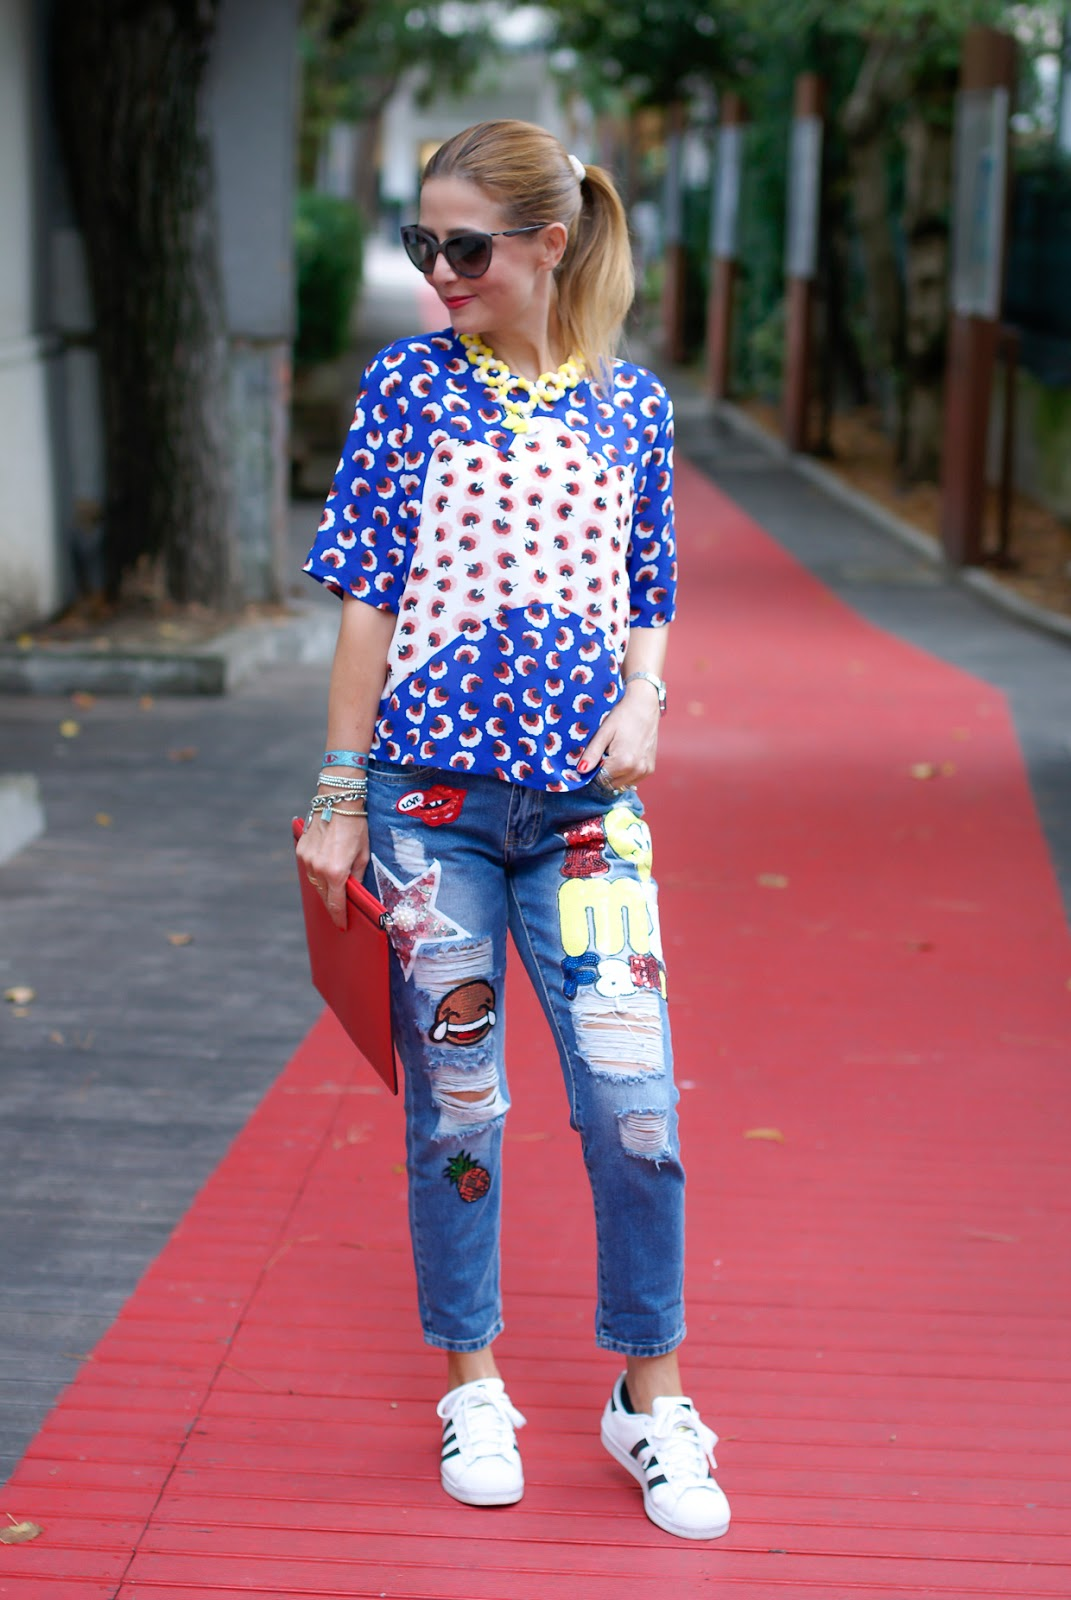 patched jeans with whatsapp emoji patch on Fashion and Cookies fashion blog, fashion blogger style